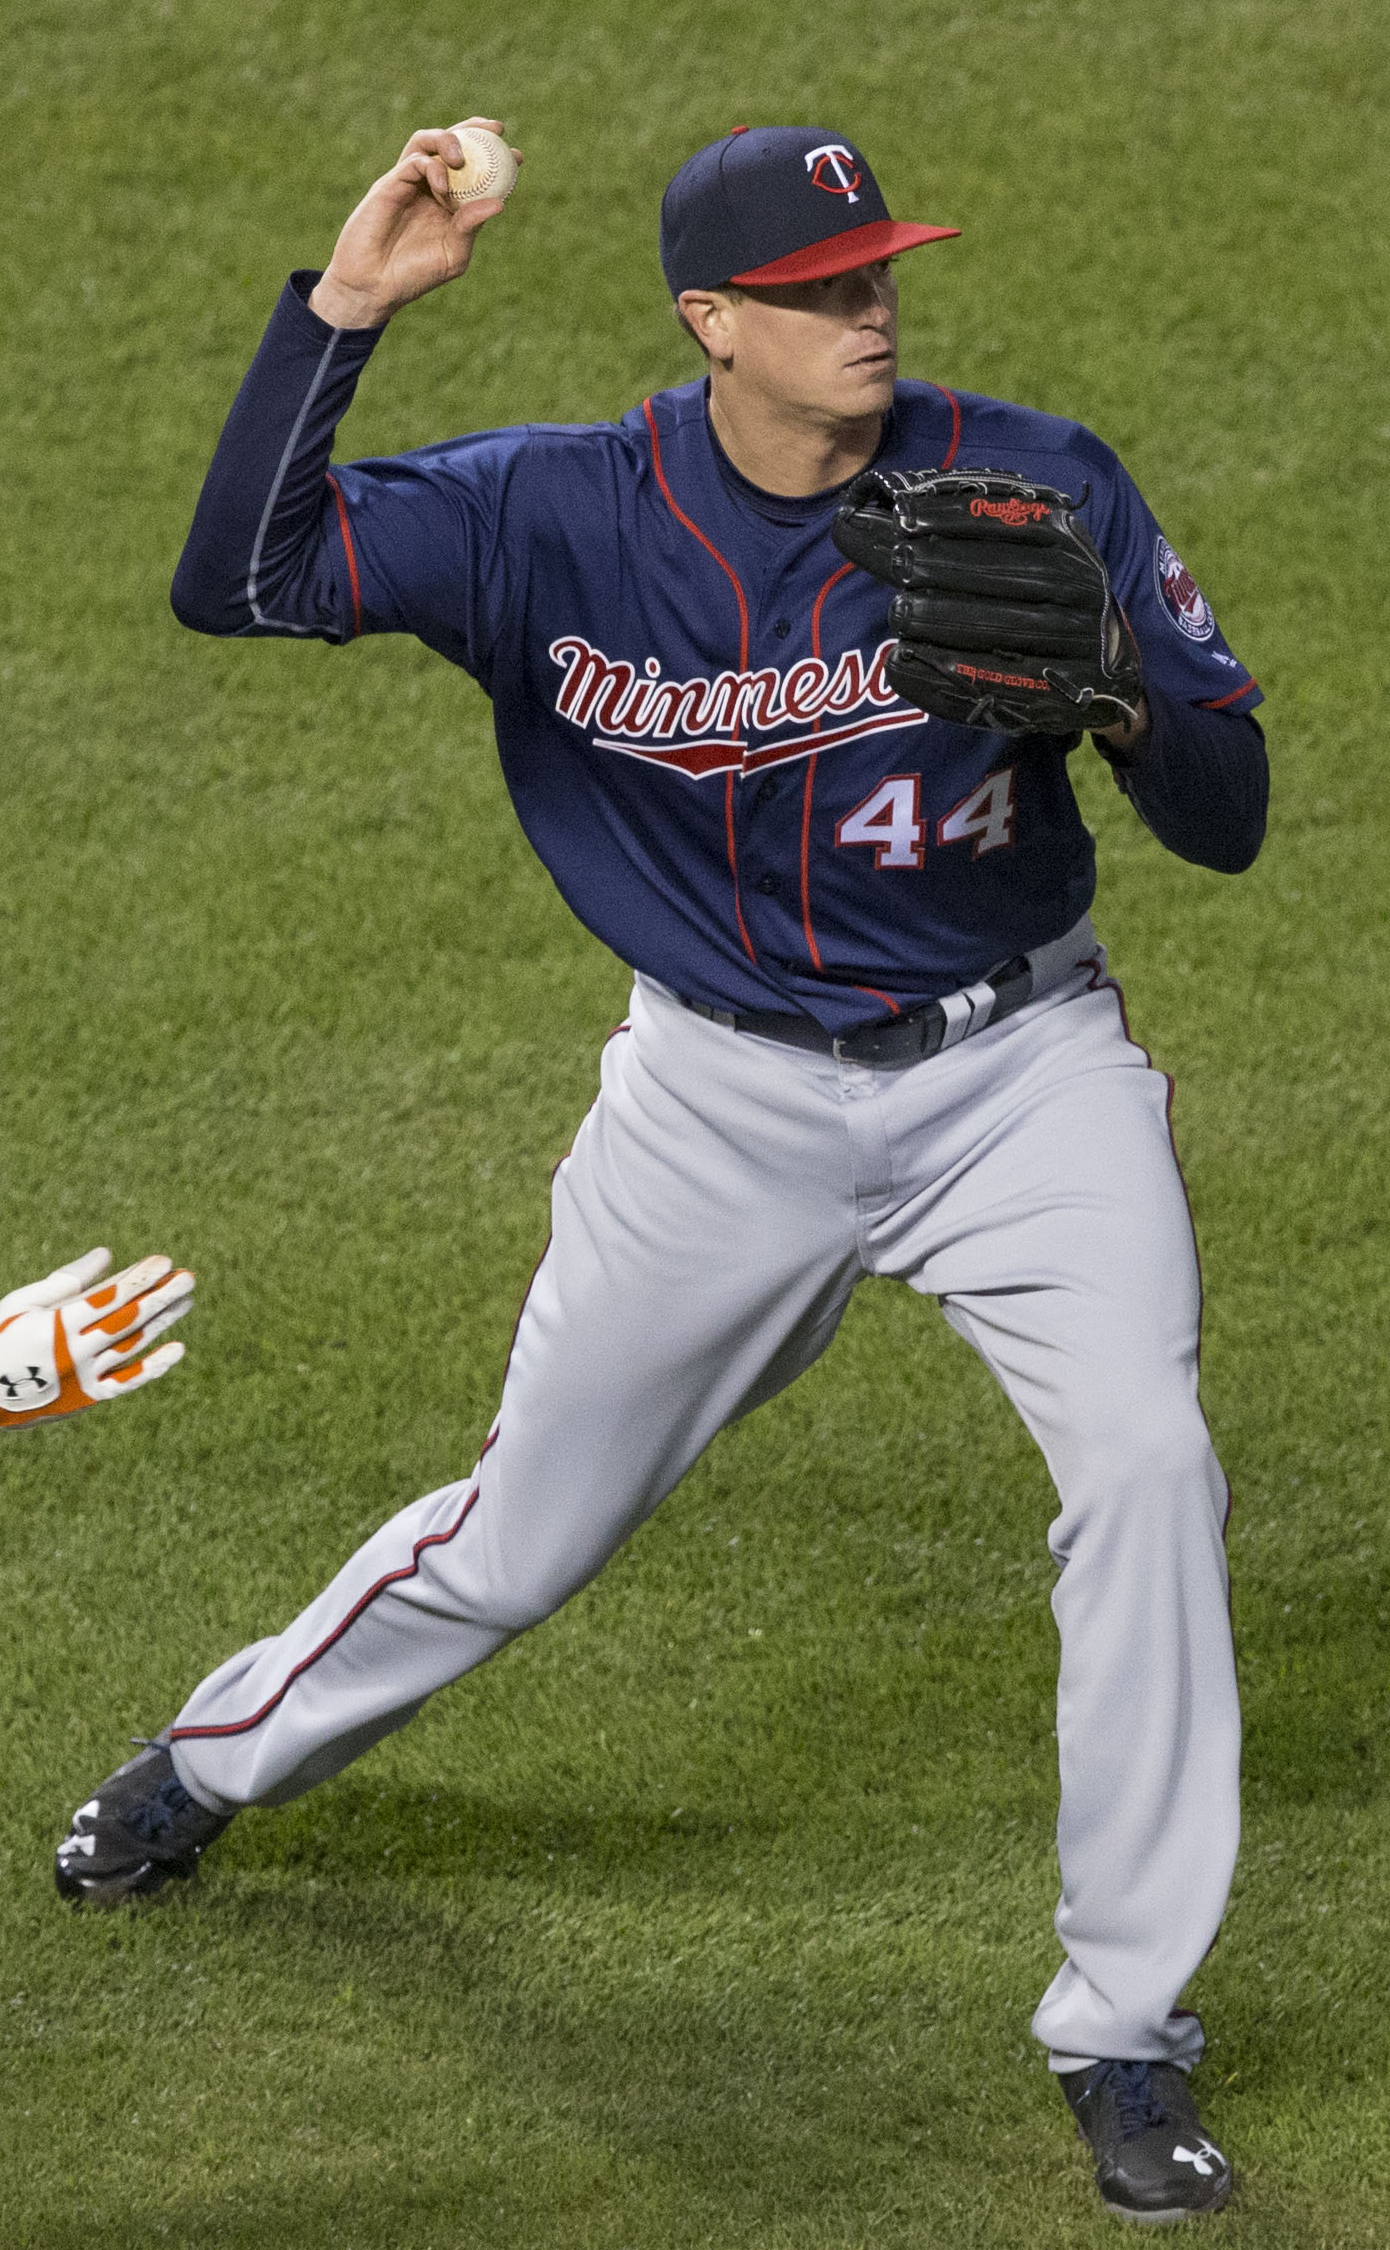 August 14, 2019 -- The Twins are predicted to beat the Brewers on the road. The Twins top hitter is Jorge Polanco and projected starting pitcher is Kyle Gibson.